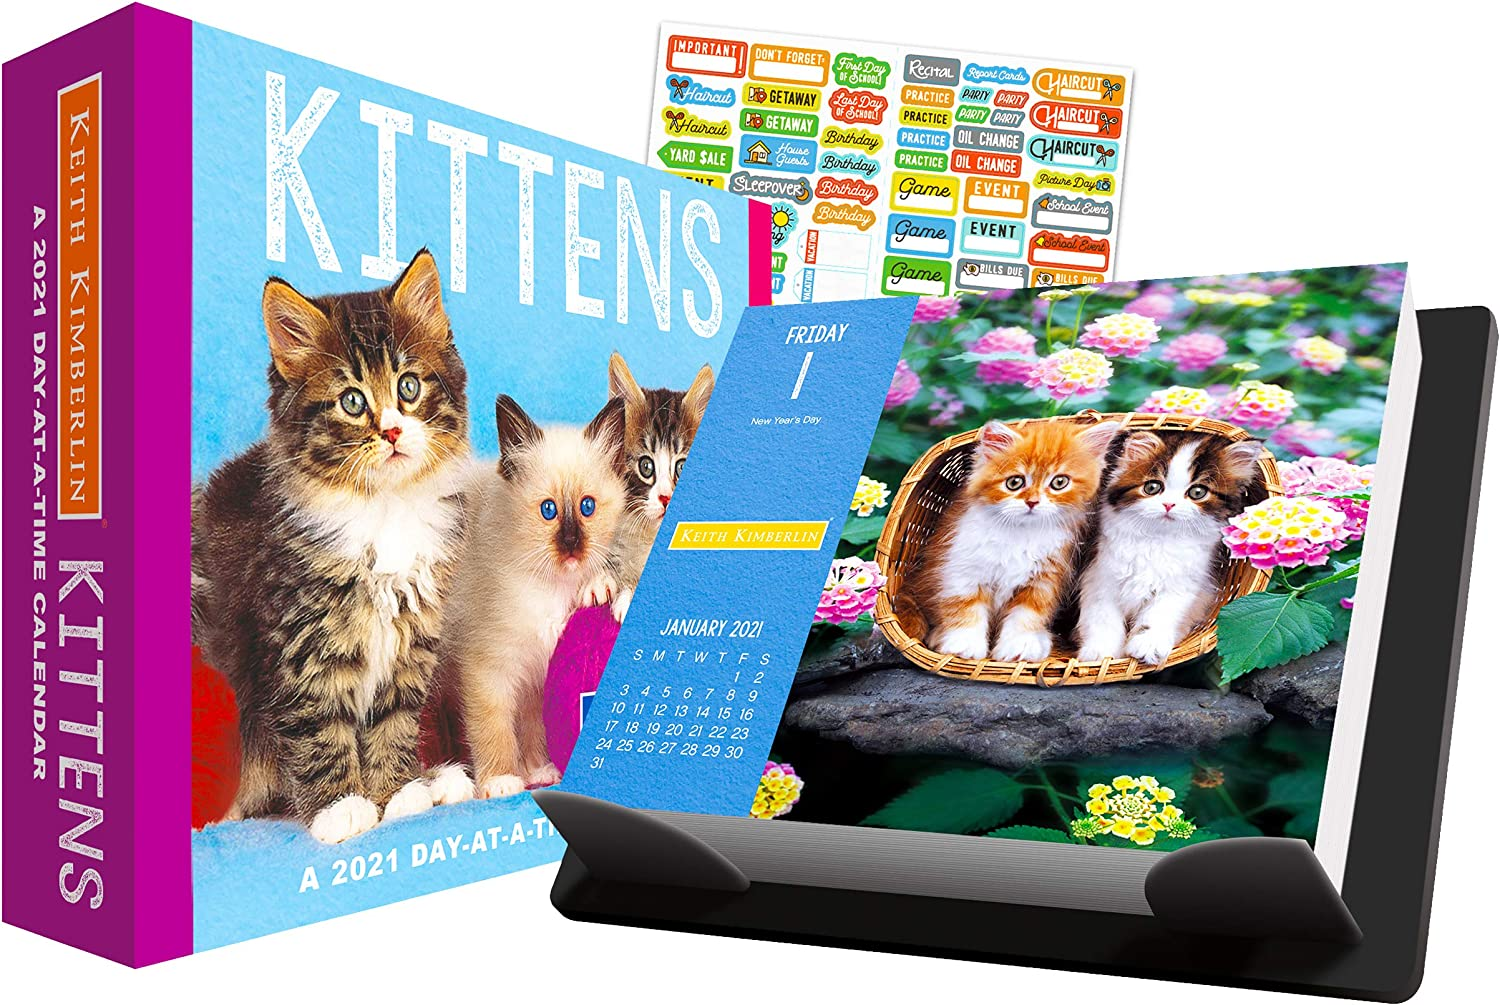 Kittens 2021 Calendar, Box Edition Bundle - Deluxe 2021 Keith Kimberlin Kittens Day-at-a-Time Box Calendar with Over 100 Calendar Stickers (Kittens Gifts, Office Supplies)